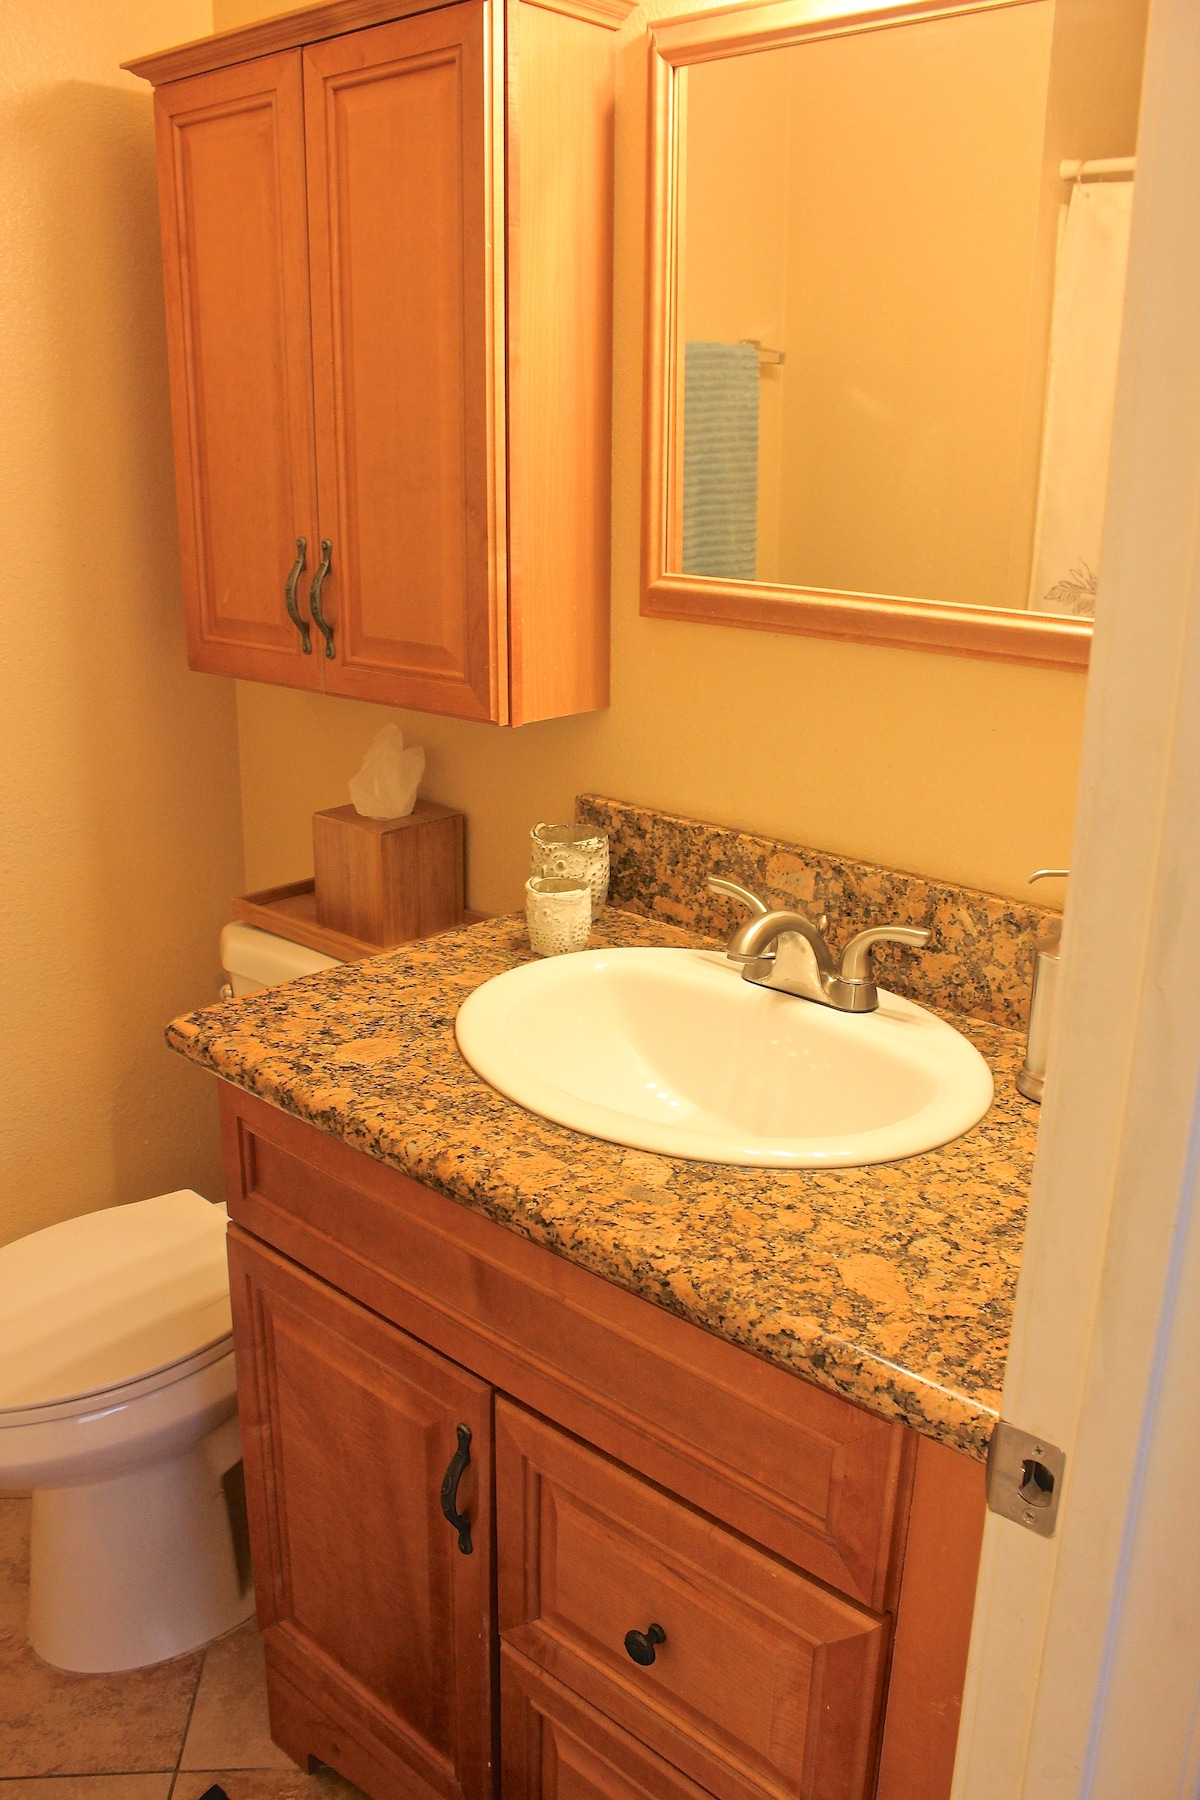 Granite counter tops and added space for your personal belongings